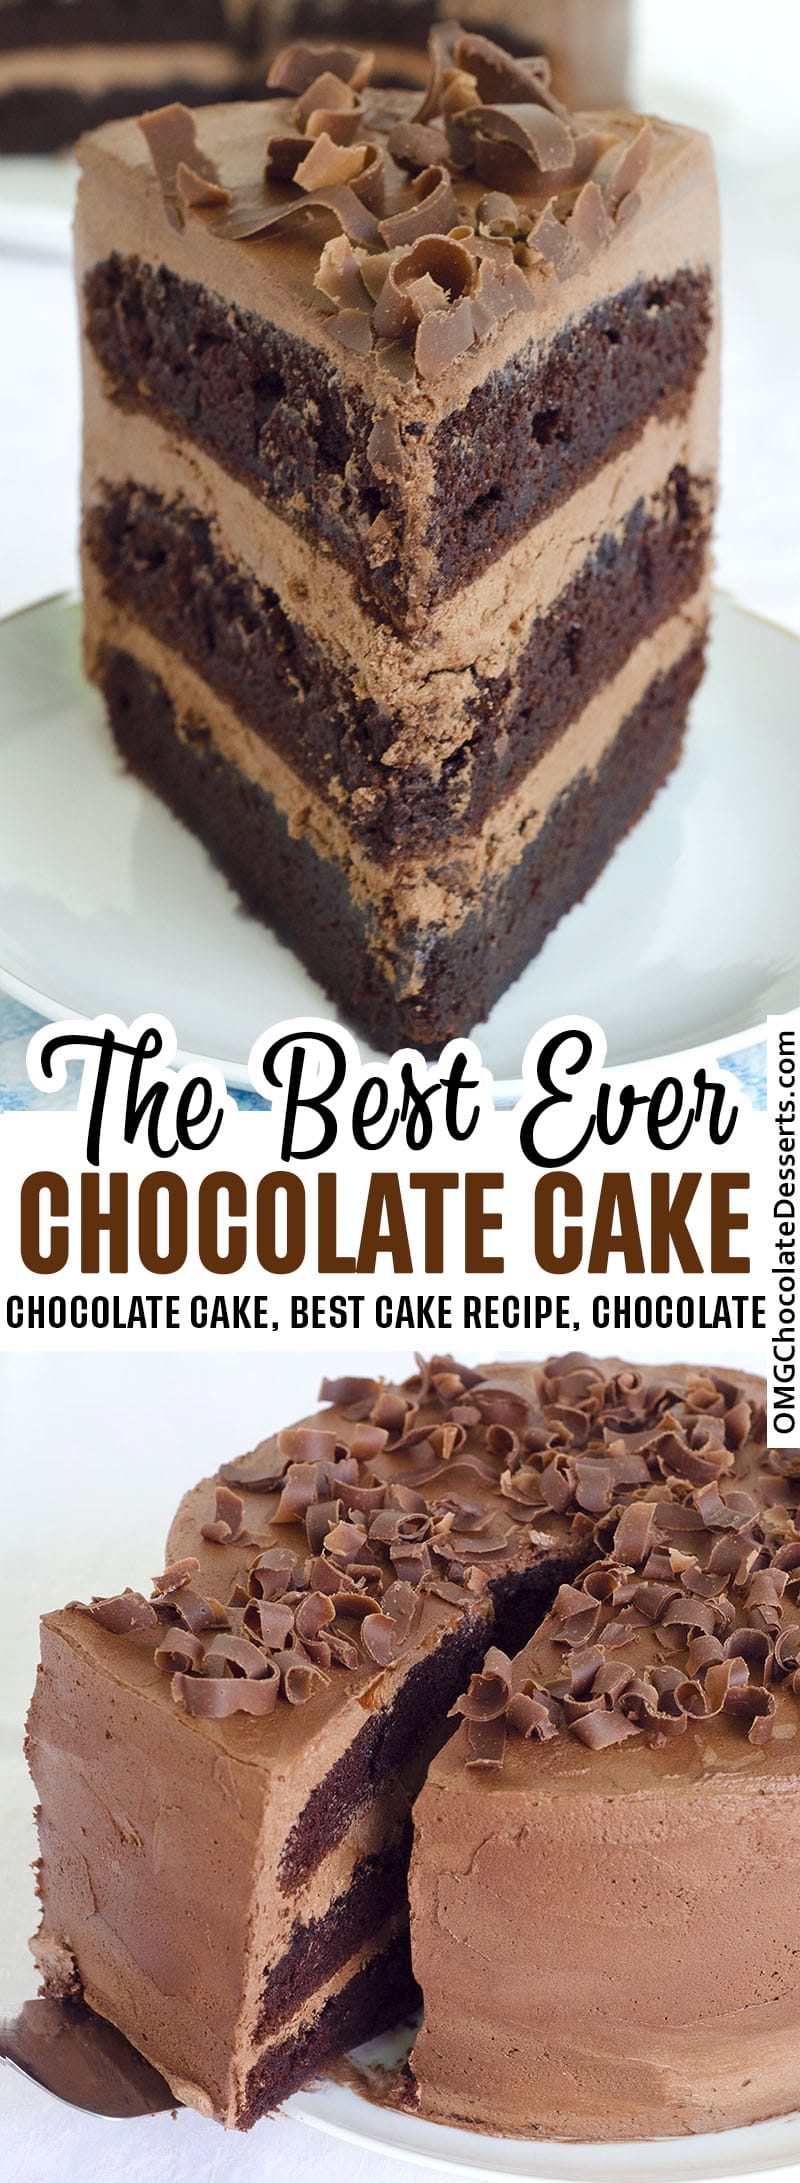 Two chocolate cake images.